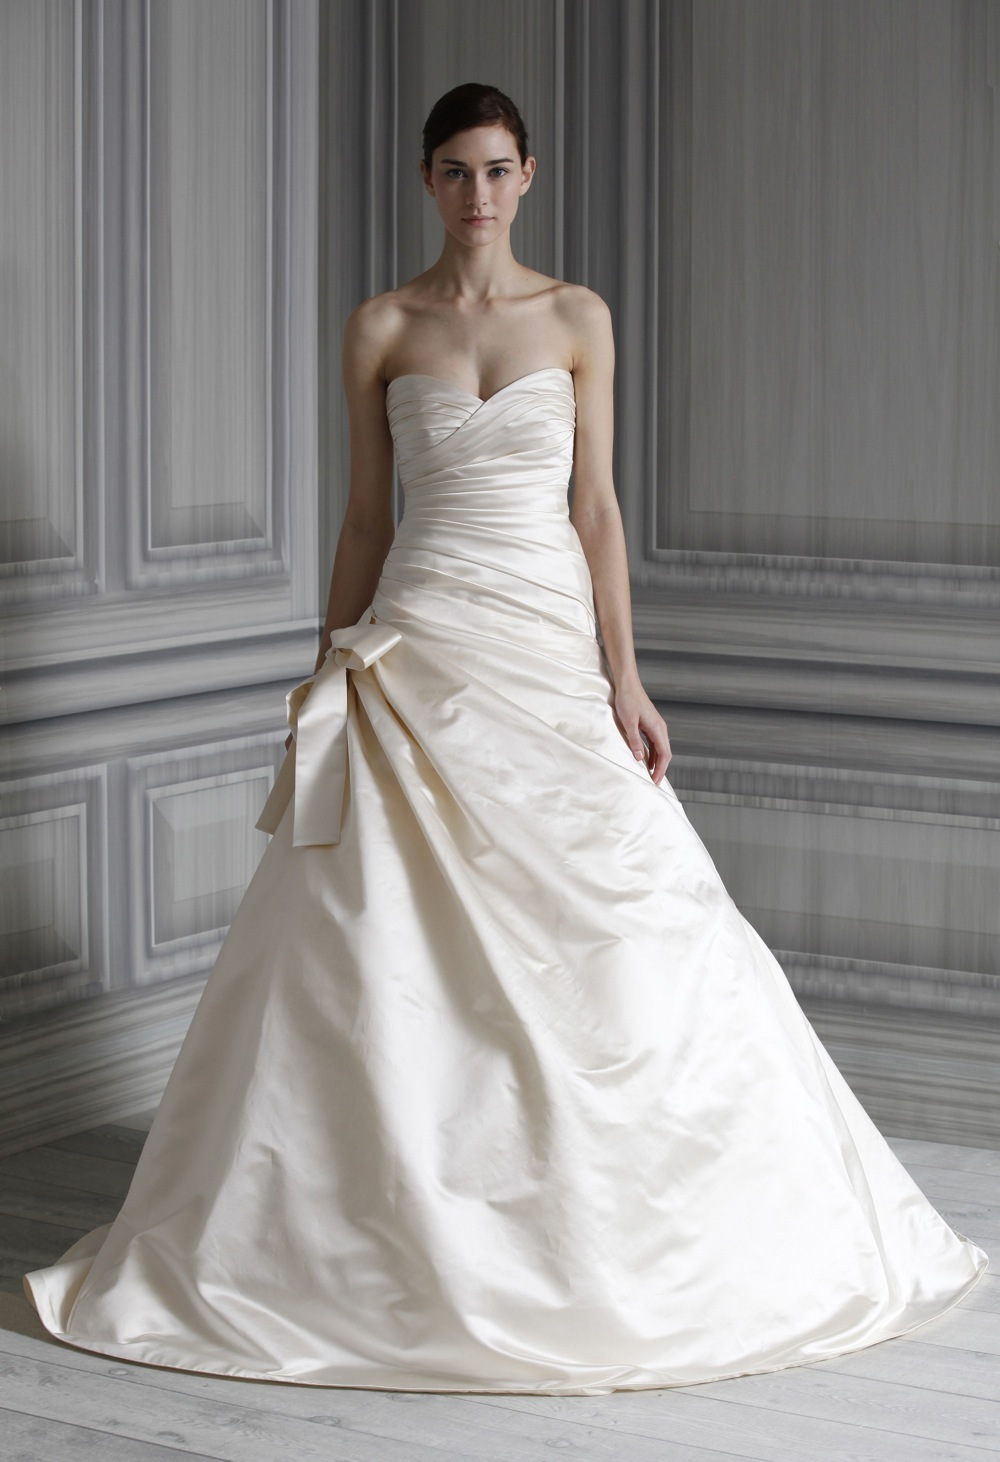 Wedding-dress-monique-lhuillier-bridal-gowns-spring-2012-glory.full